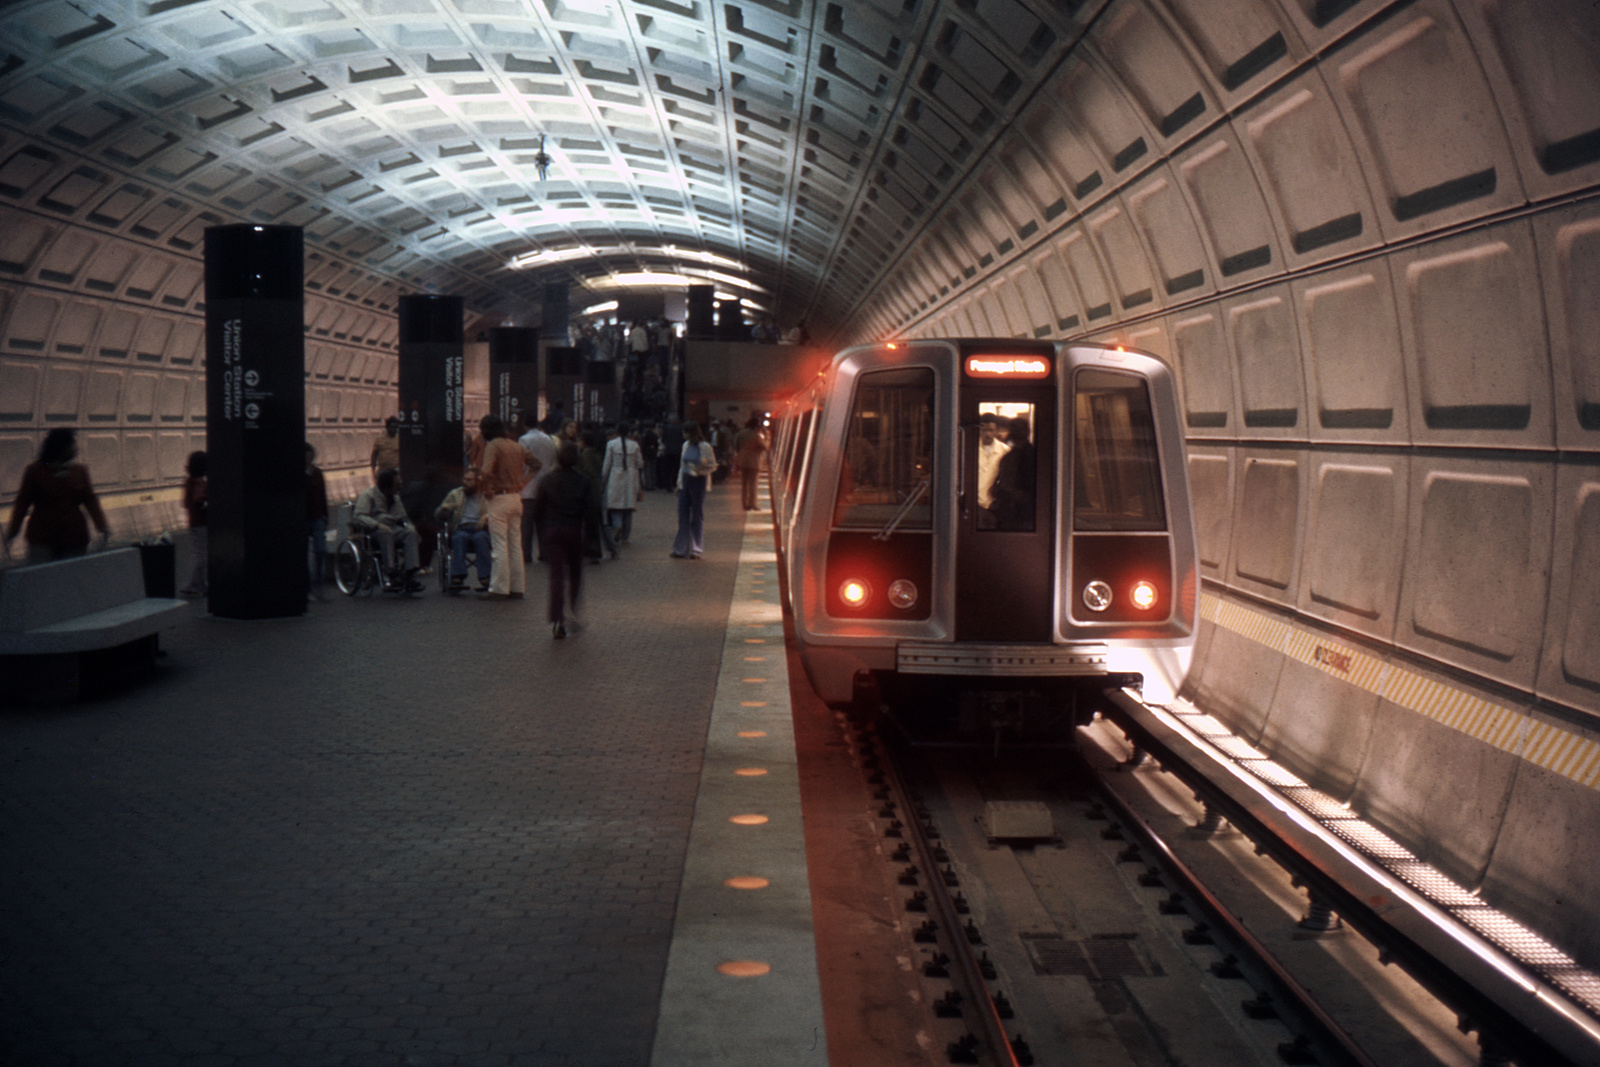 (346k, 1044x708)<br><b>Country:</b> United States<br><b>City:</b> Washington, D.C.<br><b>System:</b> Washington Metro (WMATA)<br><b>Line:</b> WMATA Red Line<br><b>Location:</b> Union Station <br><b>Collection of:</b> David Pirmann<br><b>Date:</b> 4/1976<br><b>Viewed (this week/total):</b> 0 / 8019